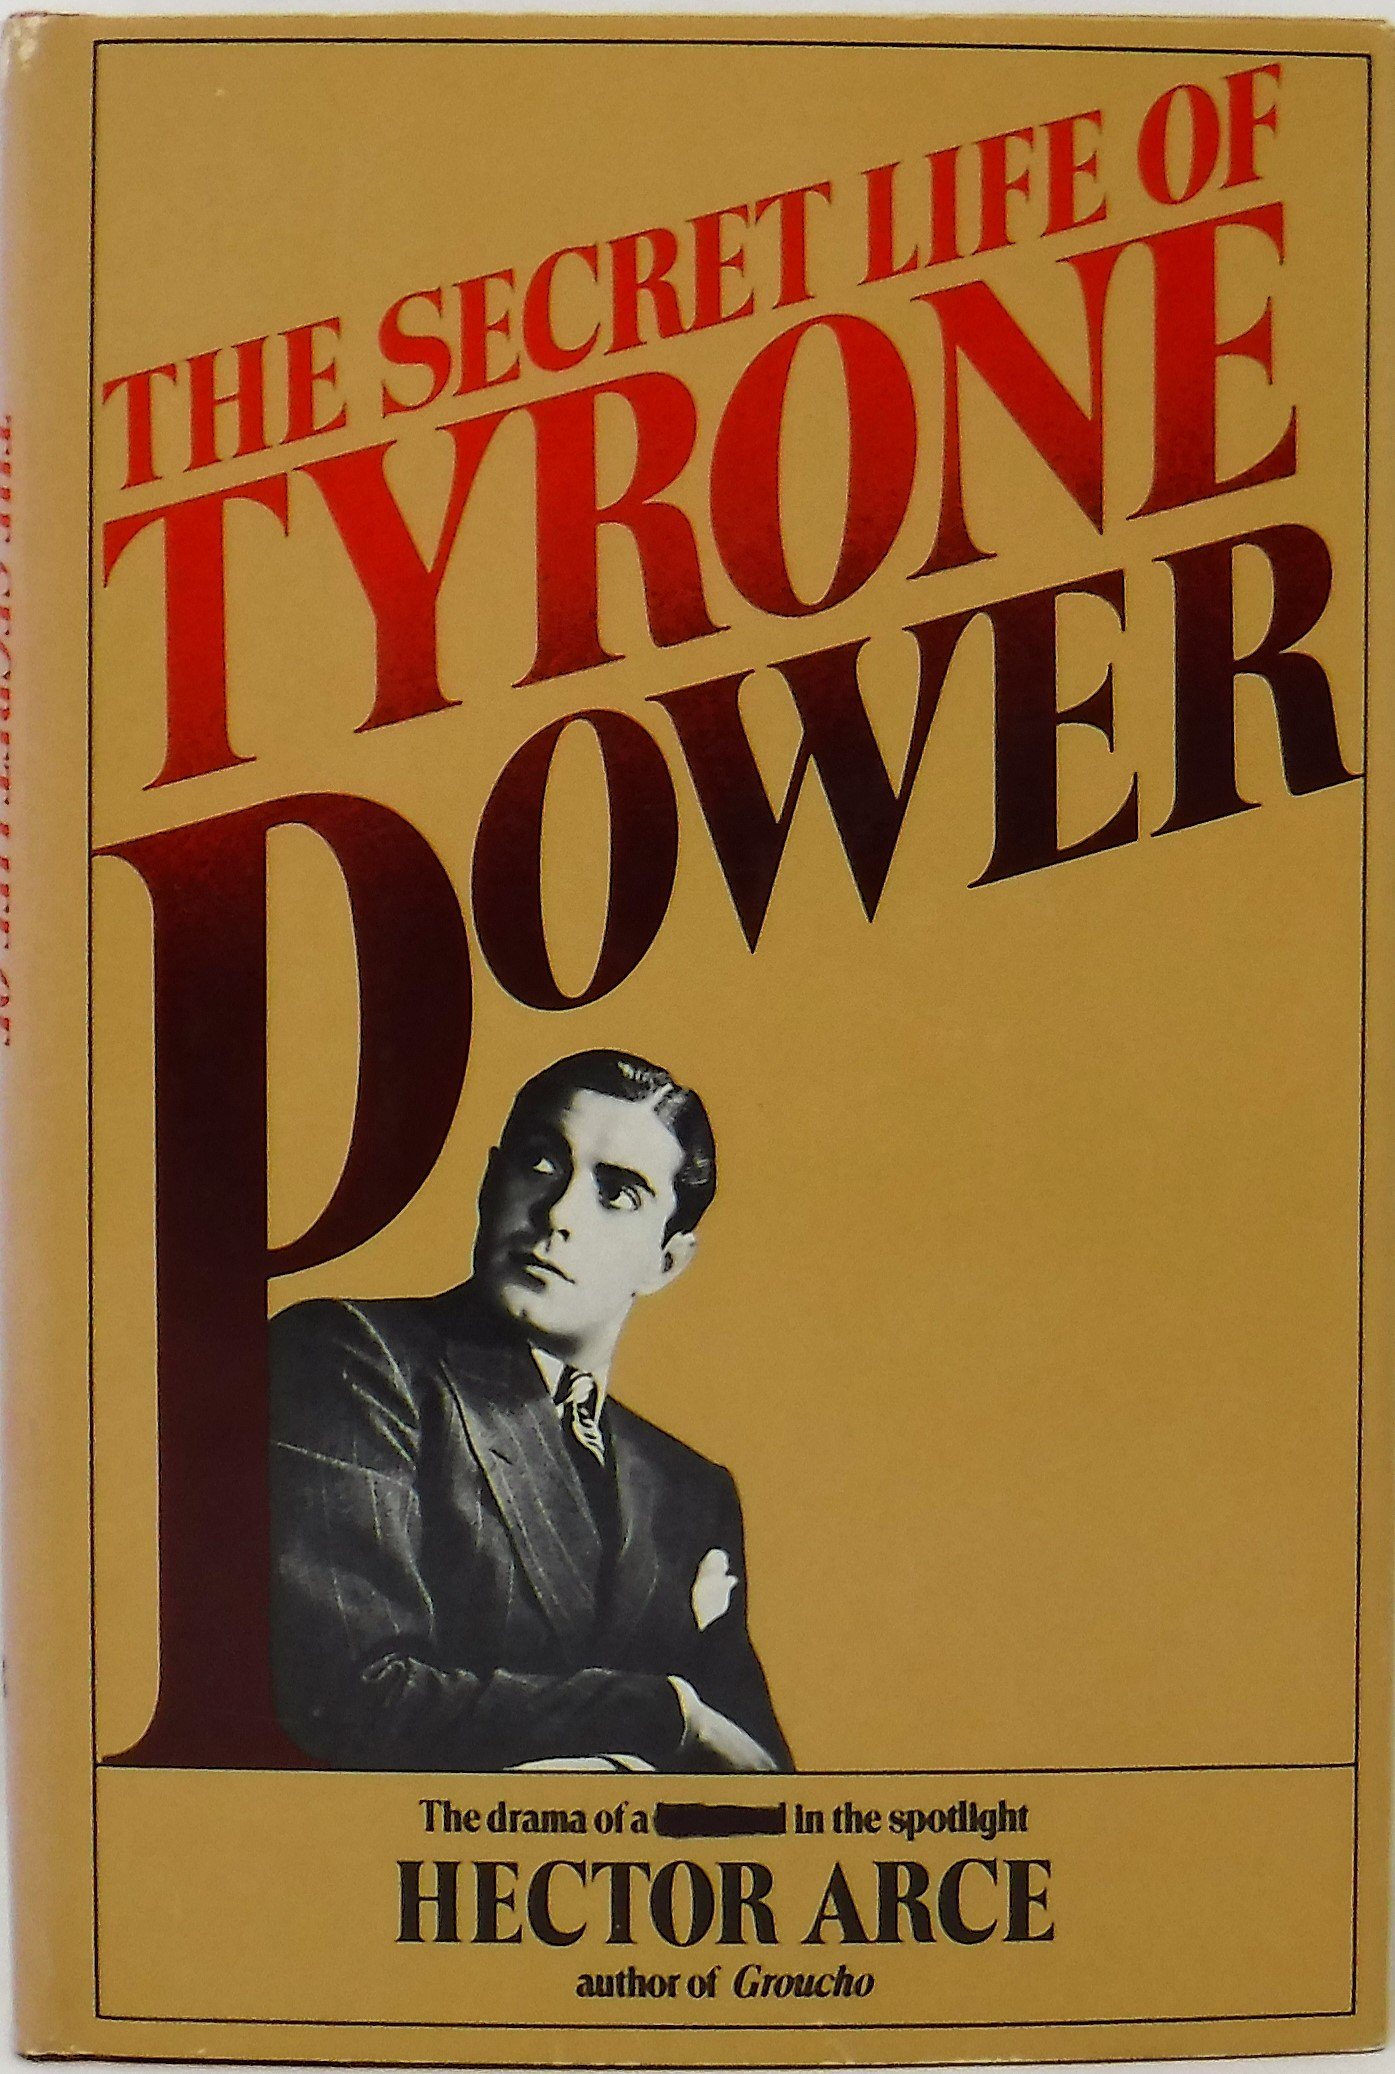 Confirm. tyrone power bisexual really